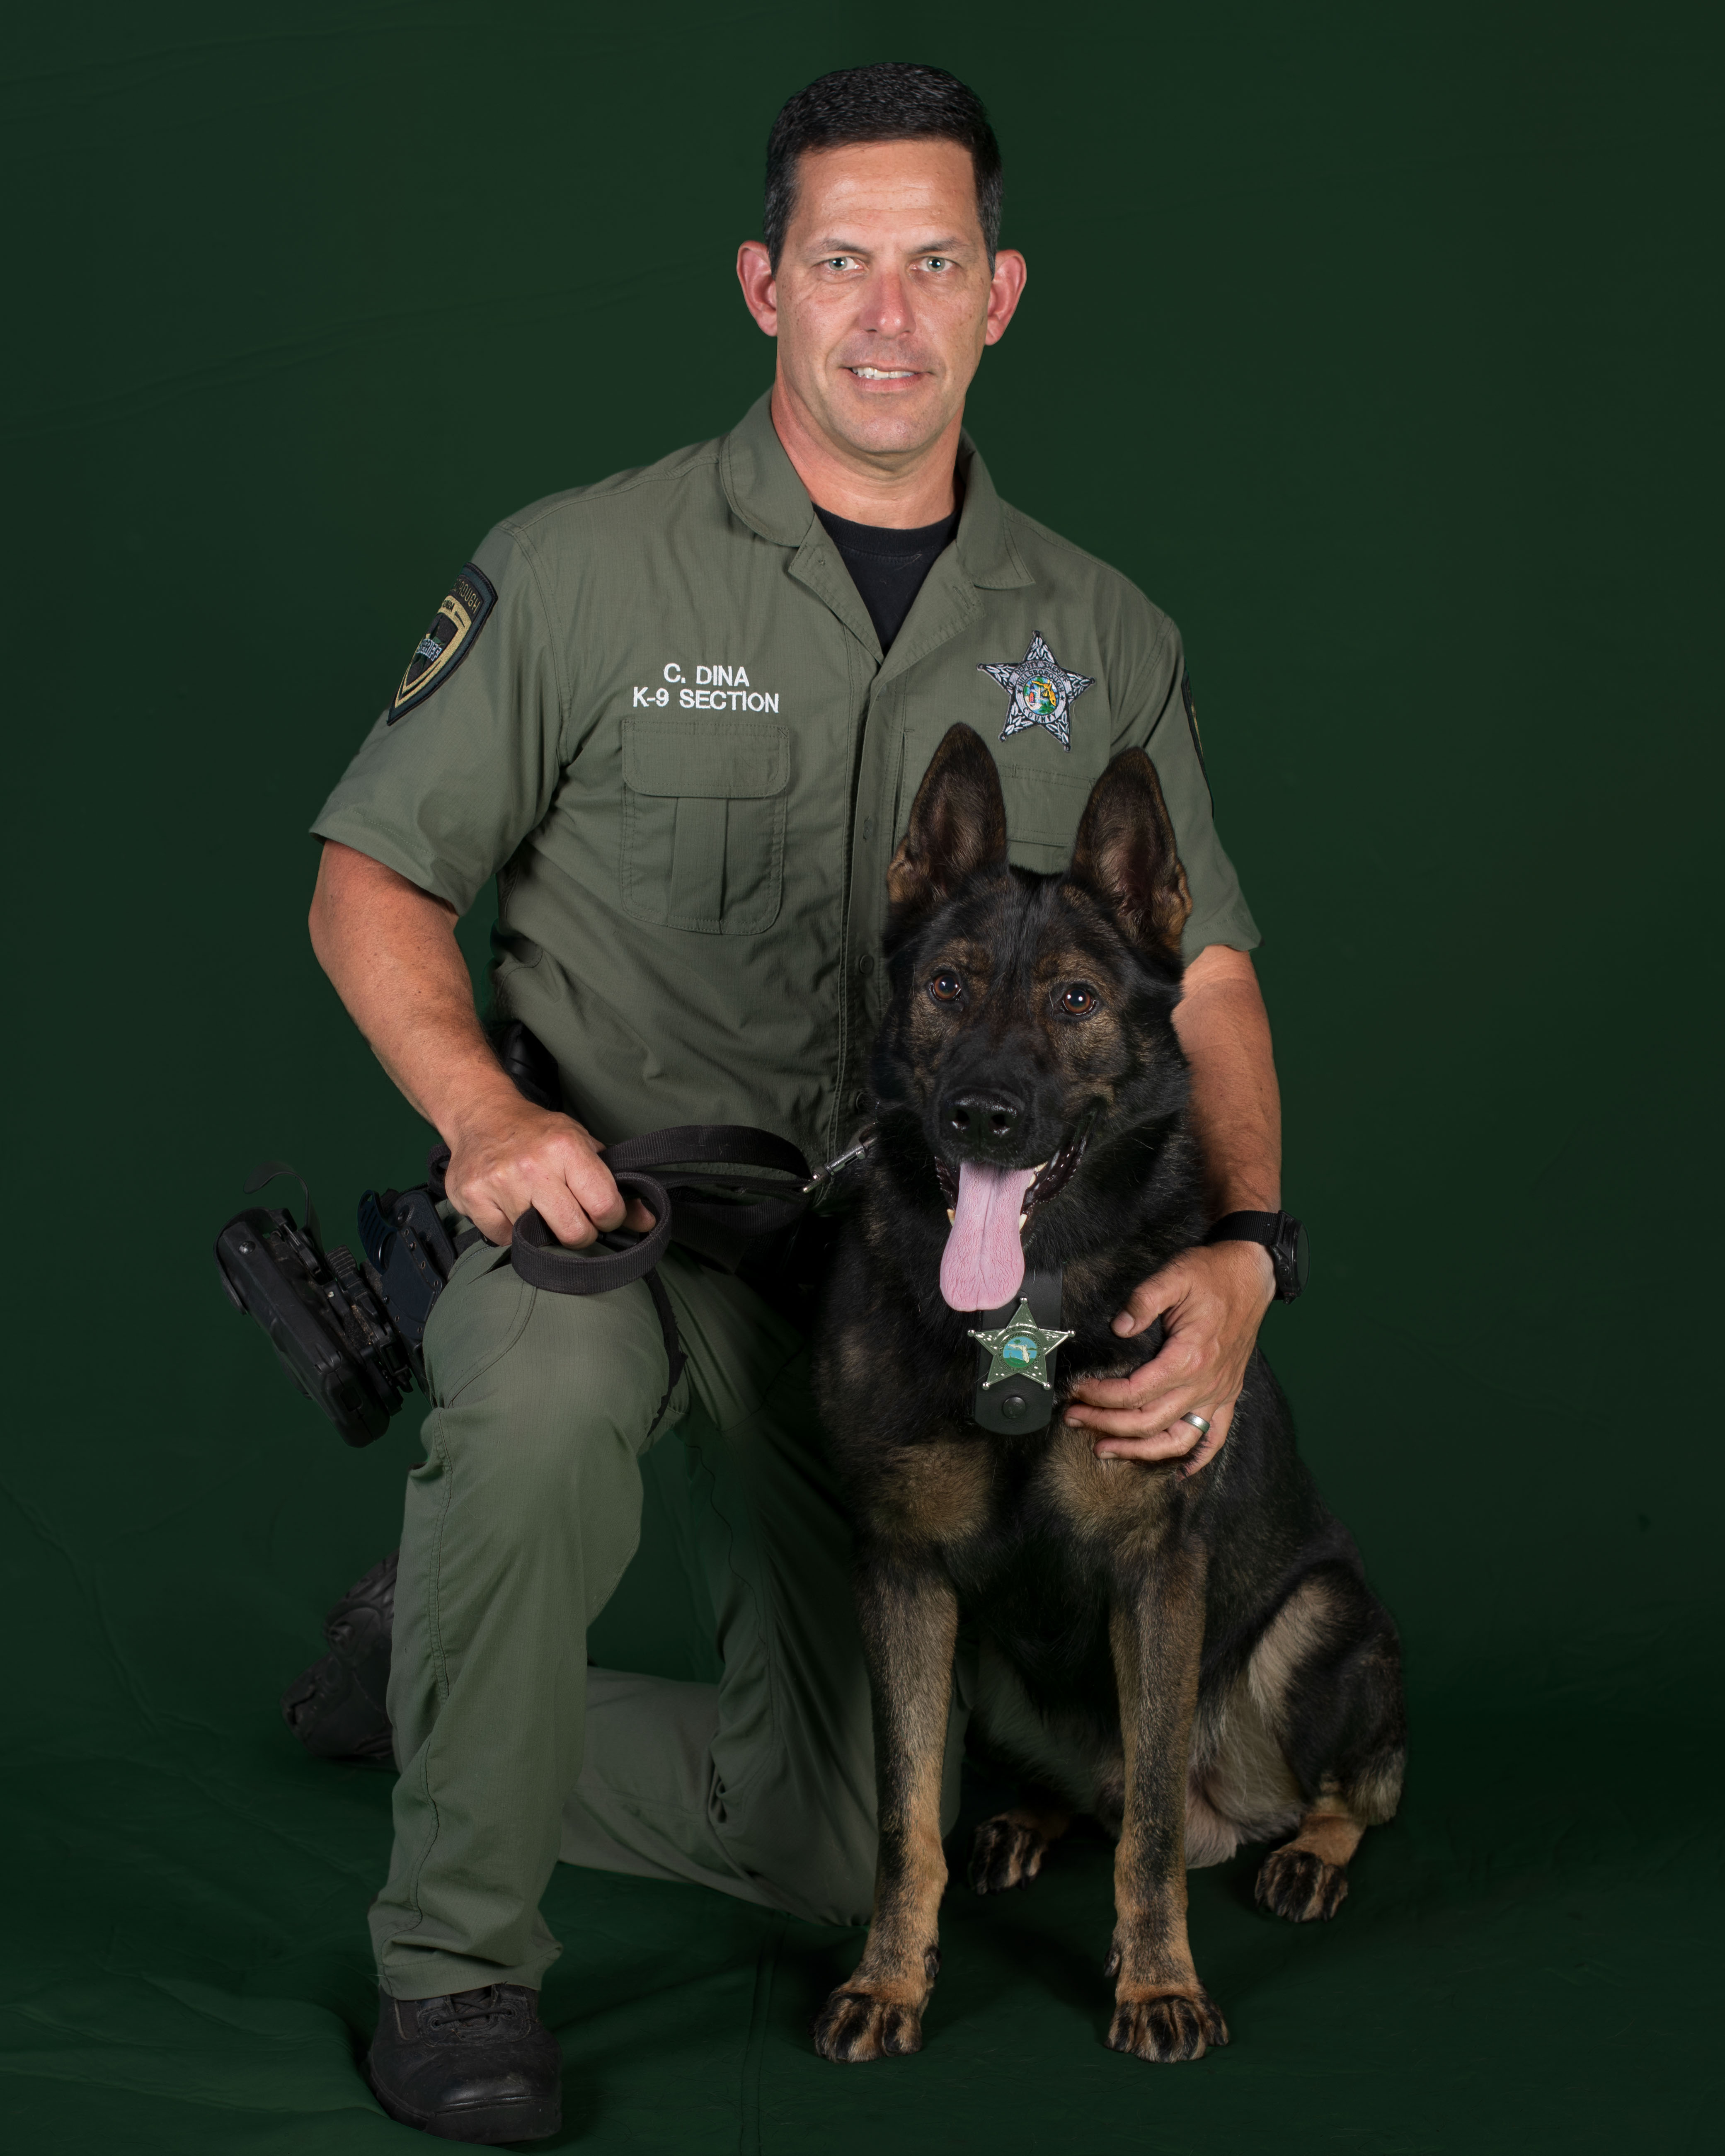 K9 Unit Christopher Dina and Max Image